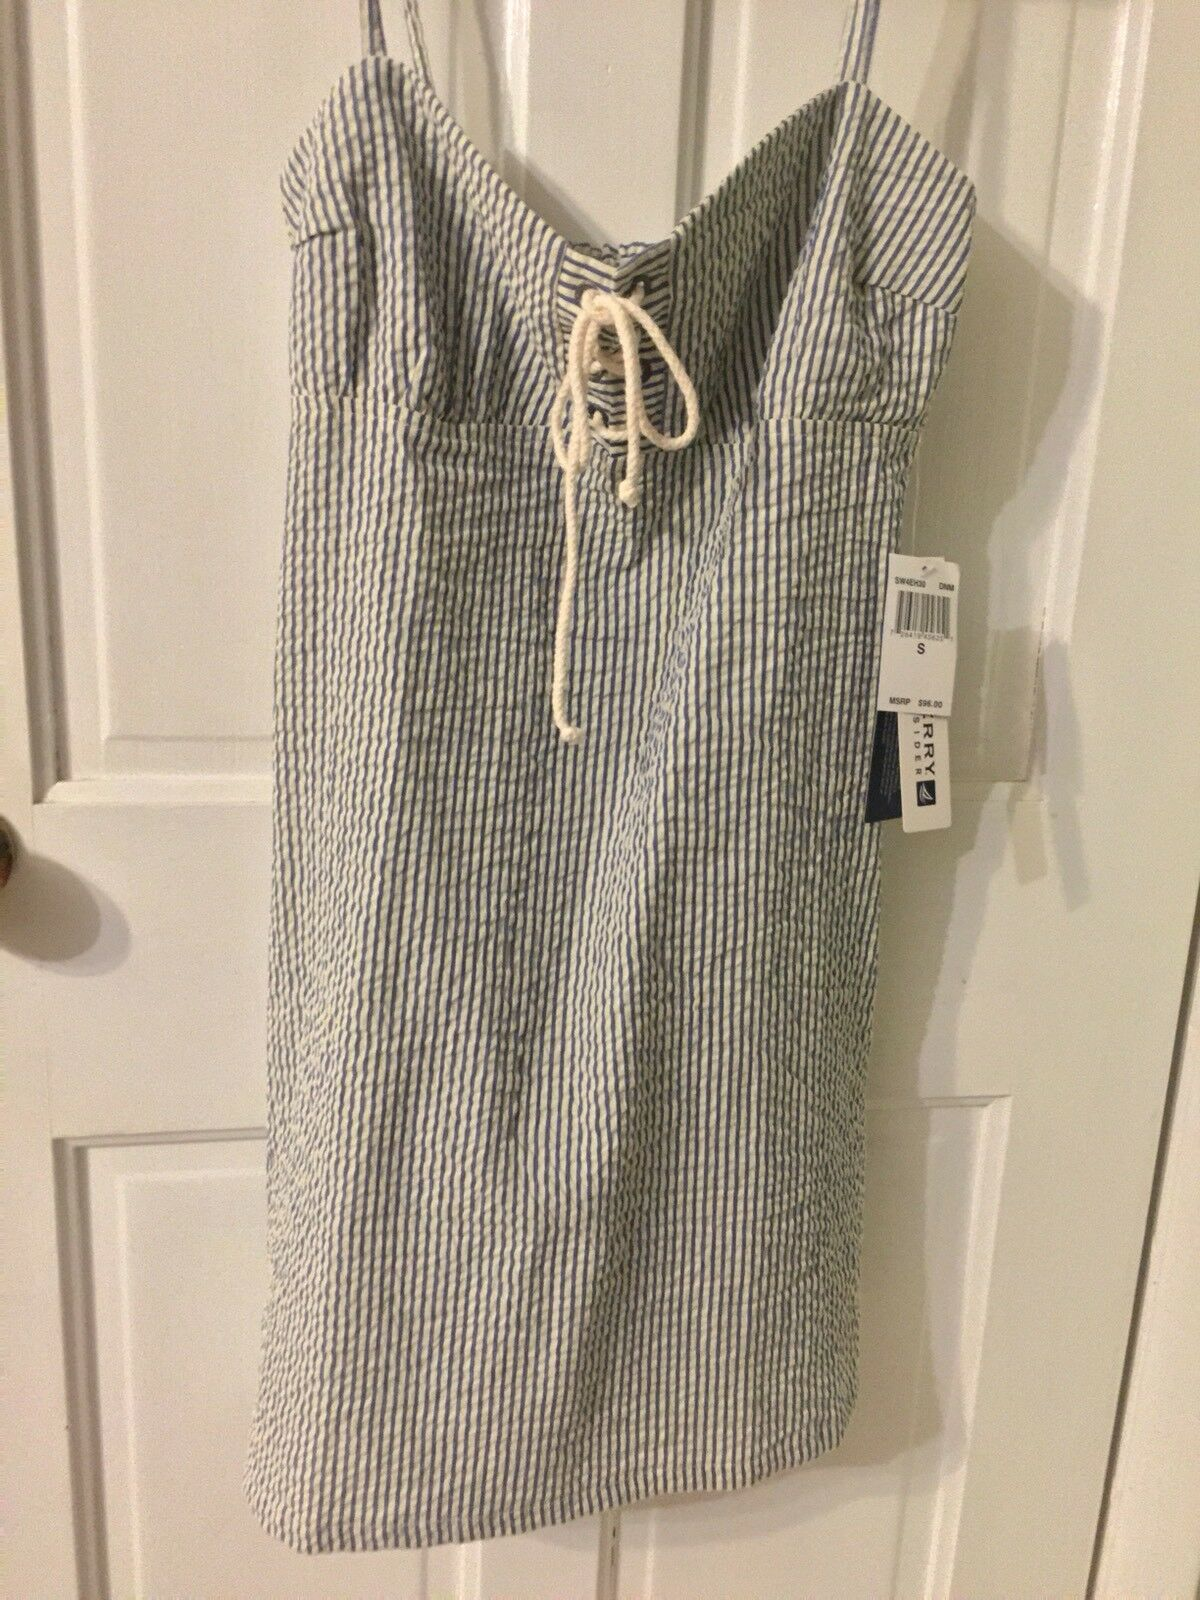 WOMEN'S BRAND NEW WITH TAGS SPERRY TOP-SIDER 100 % COTTON GINGHAM DRESS SZ S